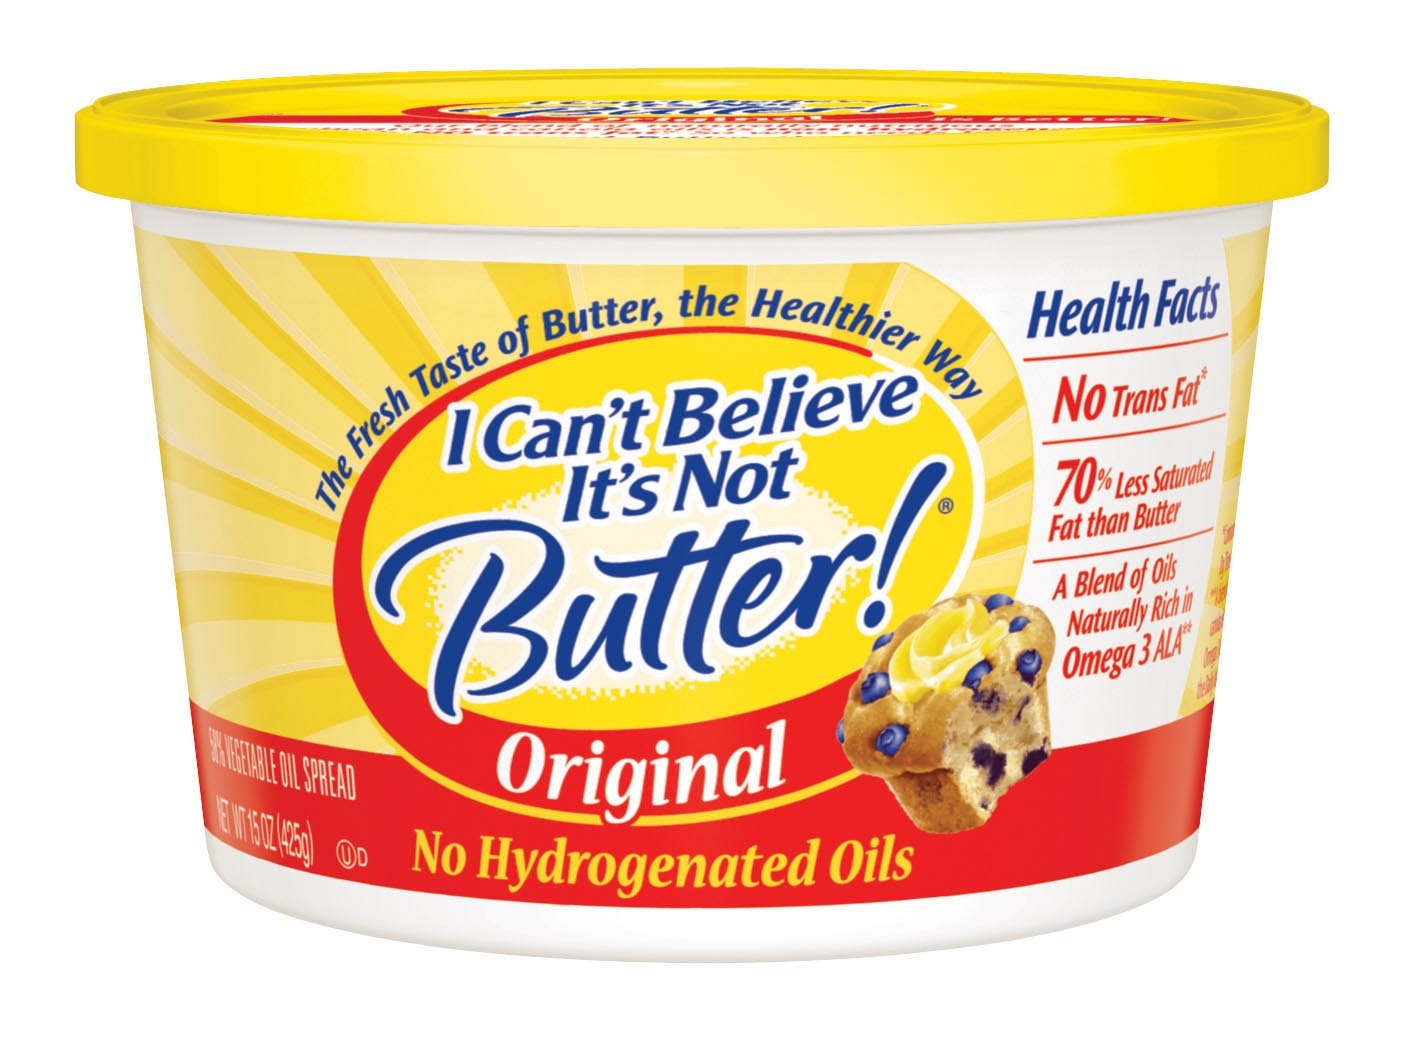 I+Can%27t+Believe+It%27s+Not+Butter+Original+Tub+Image.jpg